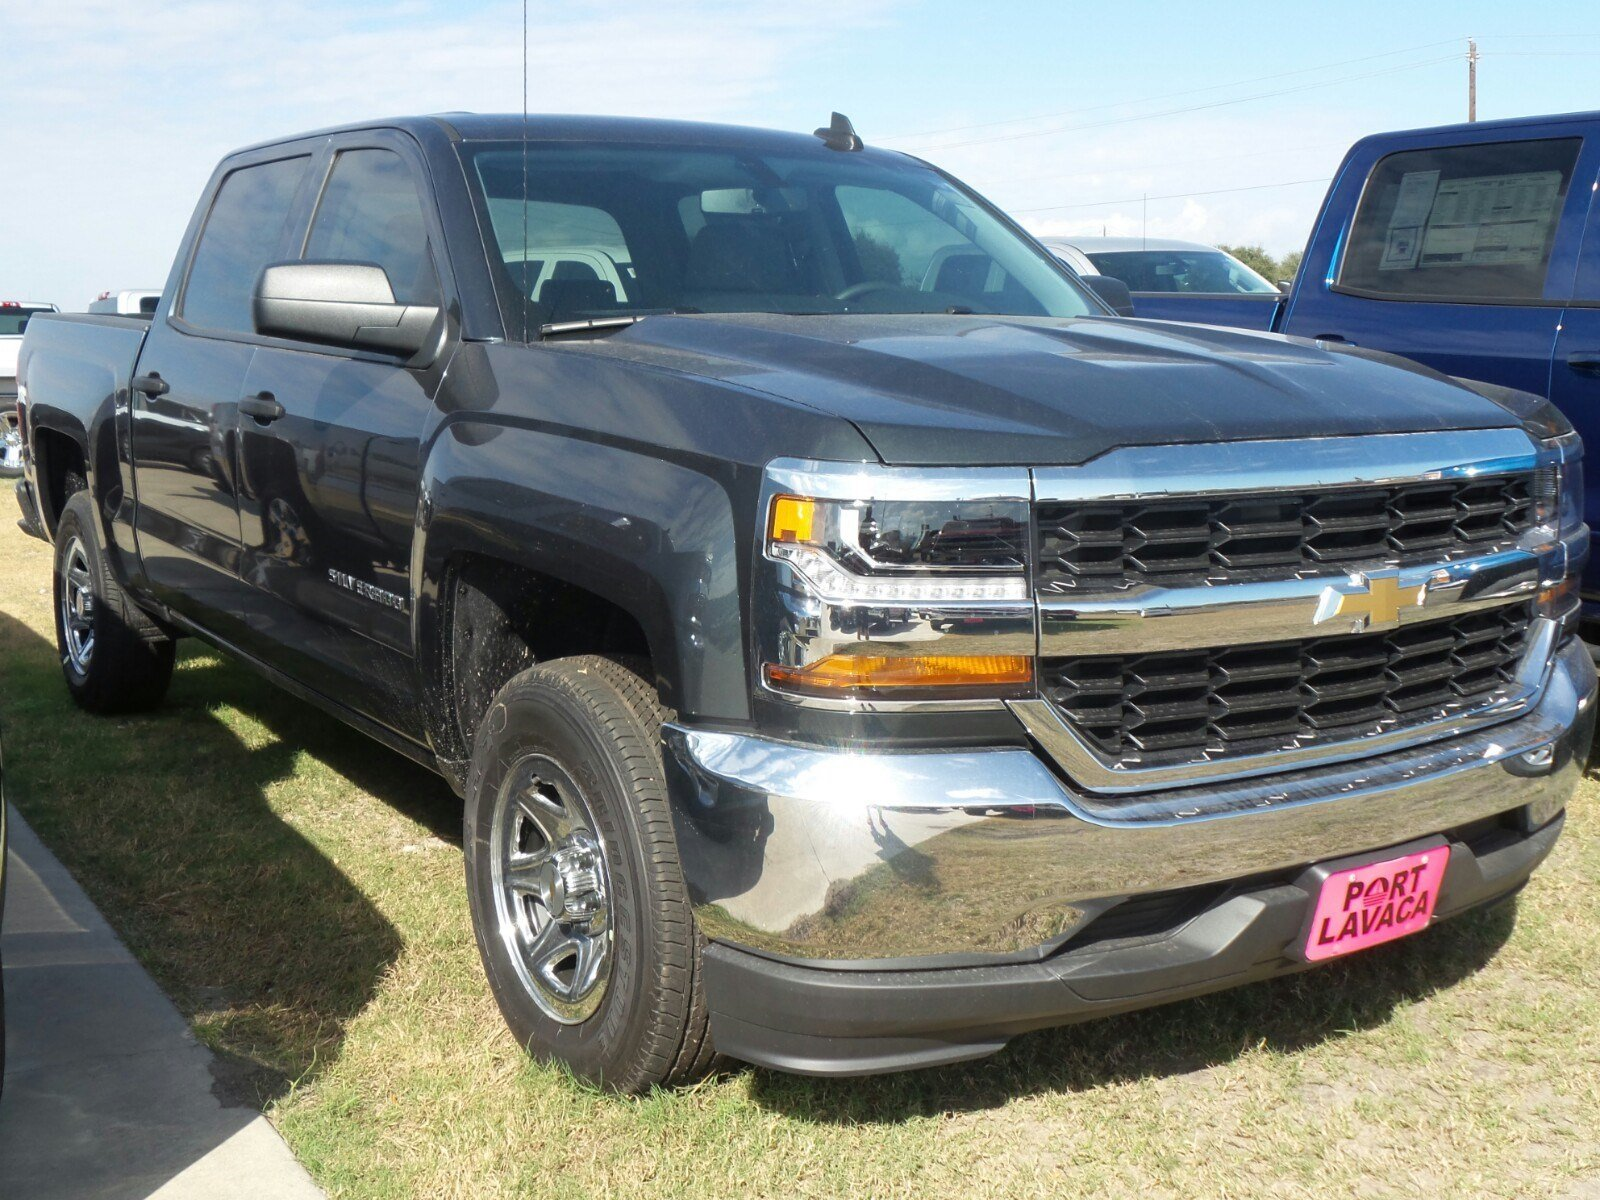 new 2017 chevrolet silverado 1500 ls crew cab pickup in port lavaca g272540 port lavaca. Black Bedroom Furniture Sets. Home Design Ideas